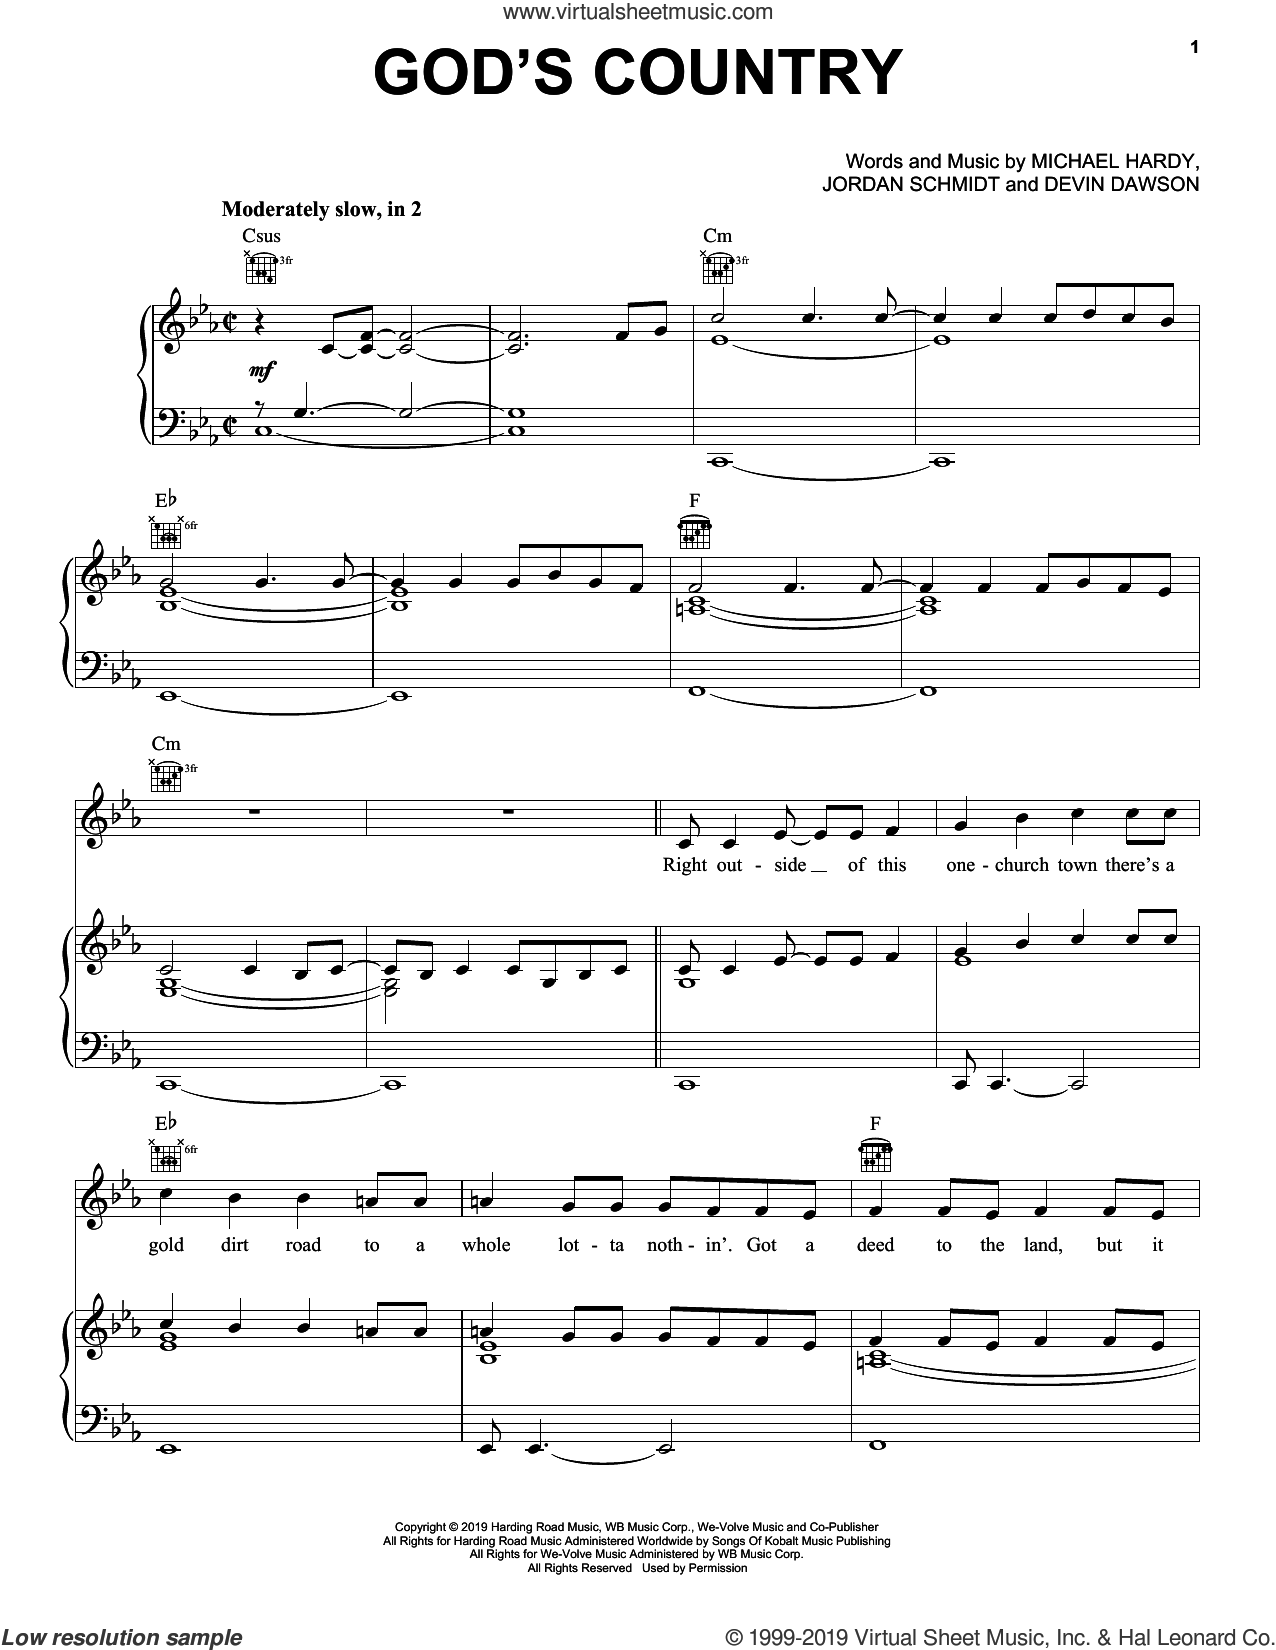 God's Country sheet music for voice, piano or guitar by Blake Shelton, Devin Dawson, Jordan Schmidt and Michael Hardy, intermediate skill level